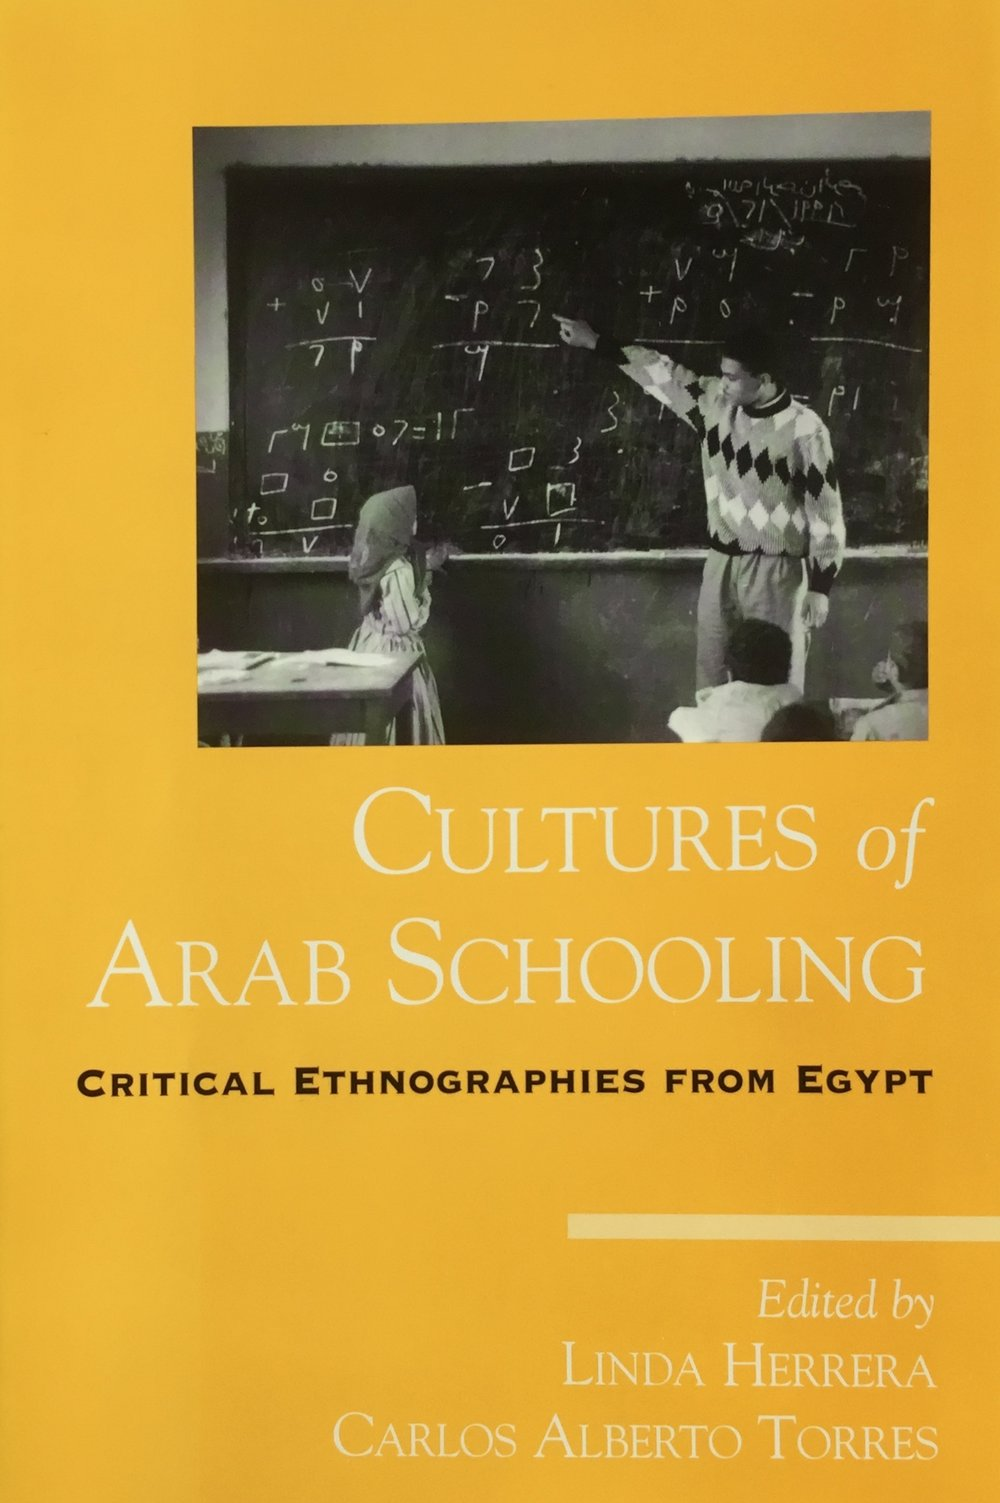 Herrera, L. & Torres, C.A. (2006).  Introduction: Possibilities for critical education in the Arab world.  In L. Herrera & C. A. Torres (Eds.),  Cultures of Arab schooling: Critical ethnographies from Egypt  (pp. 1-24). New York: State University of New York Press.